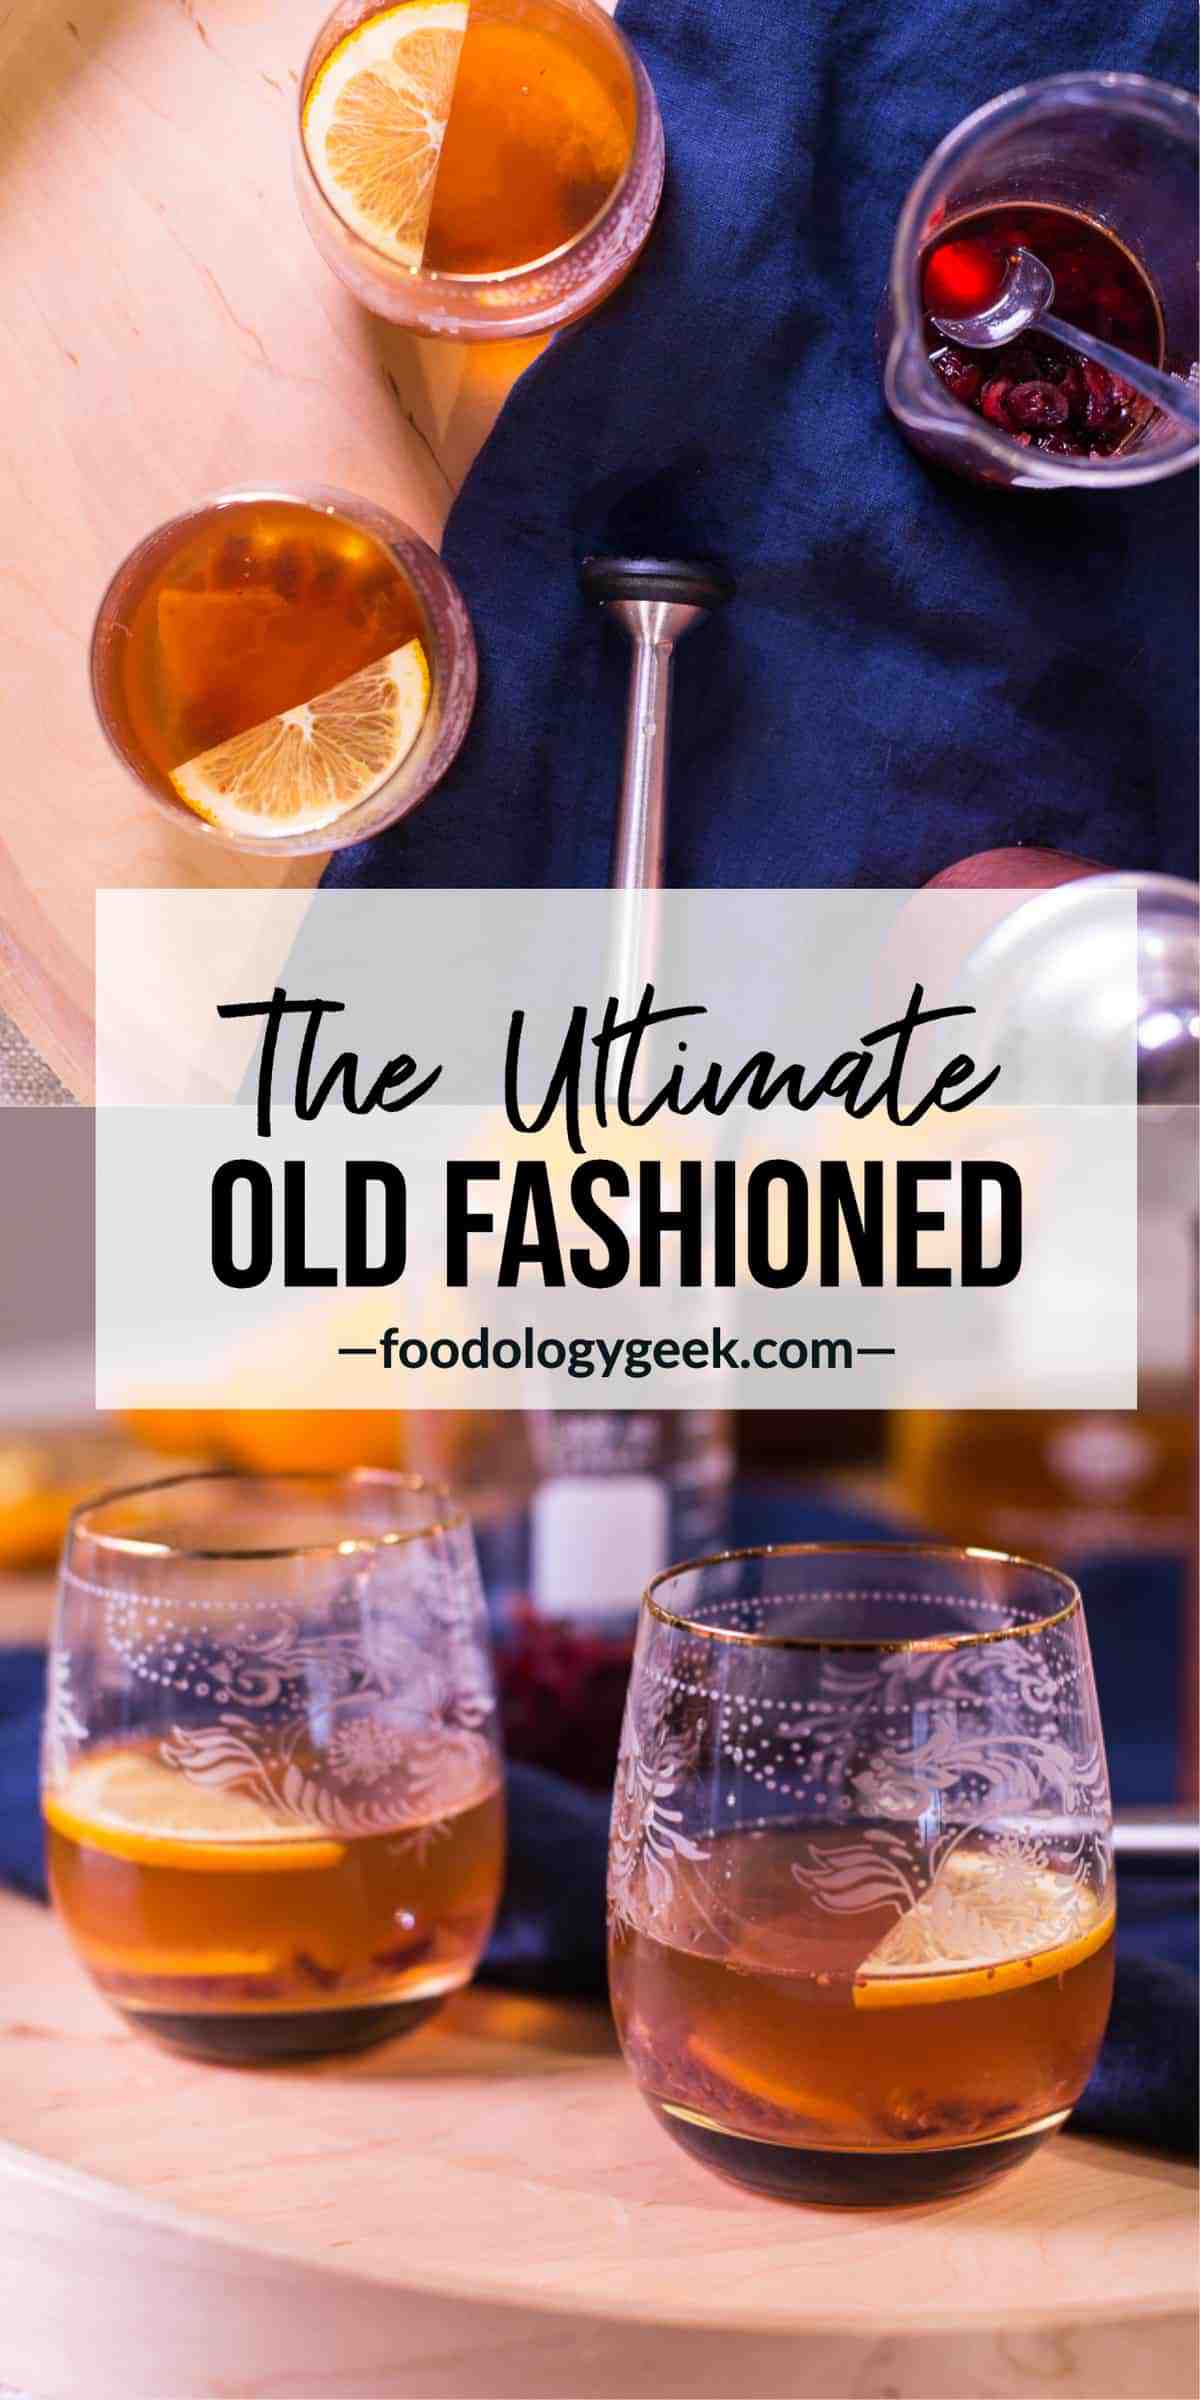 The Ultimate Old Fashioned Recipe, pinterest image by foodology geek